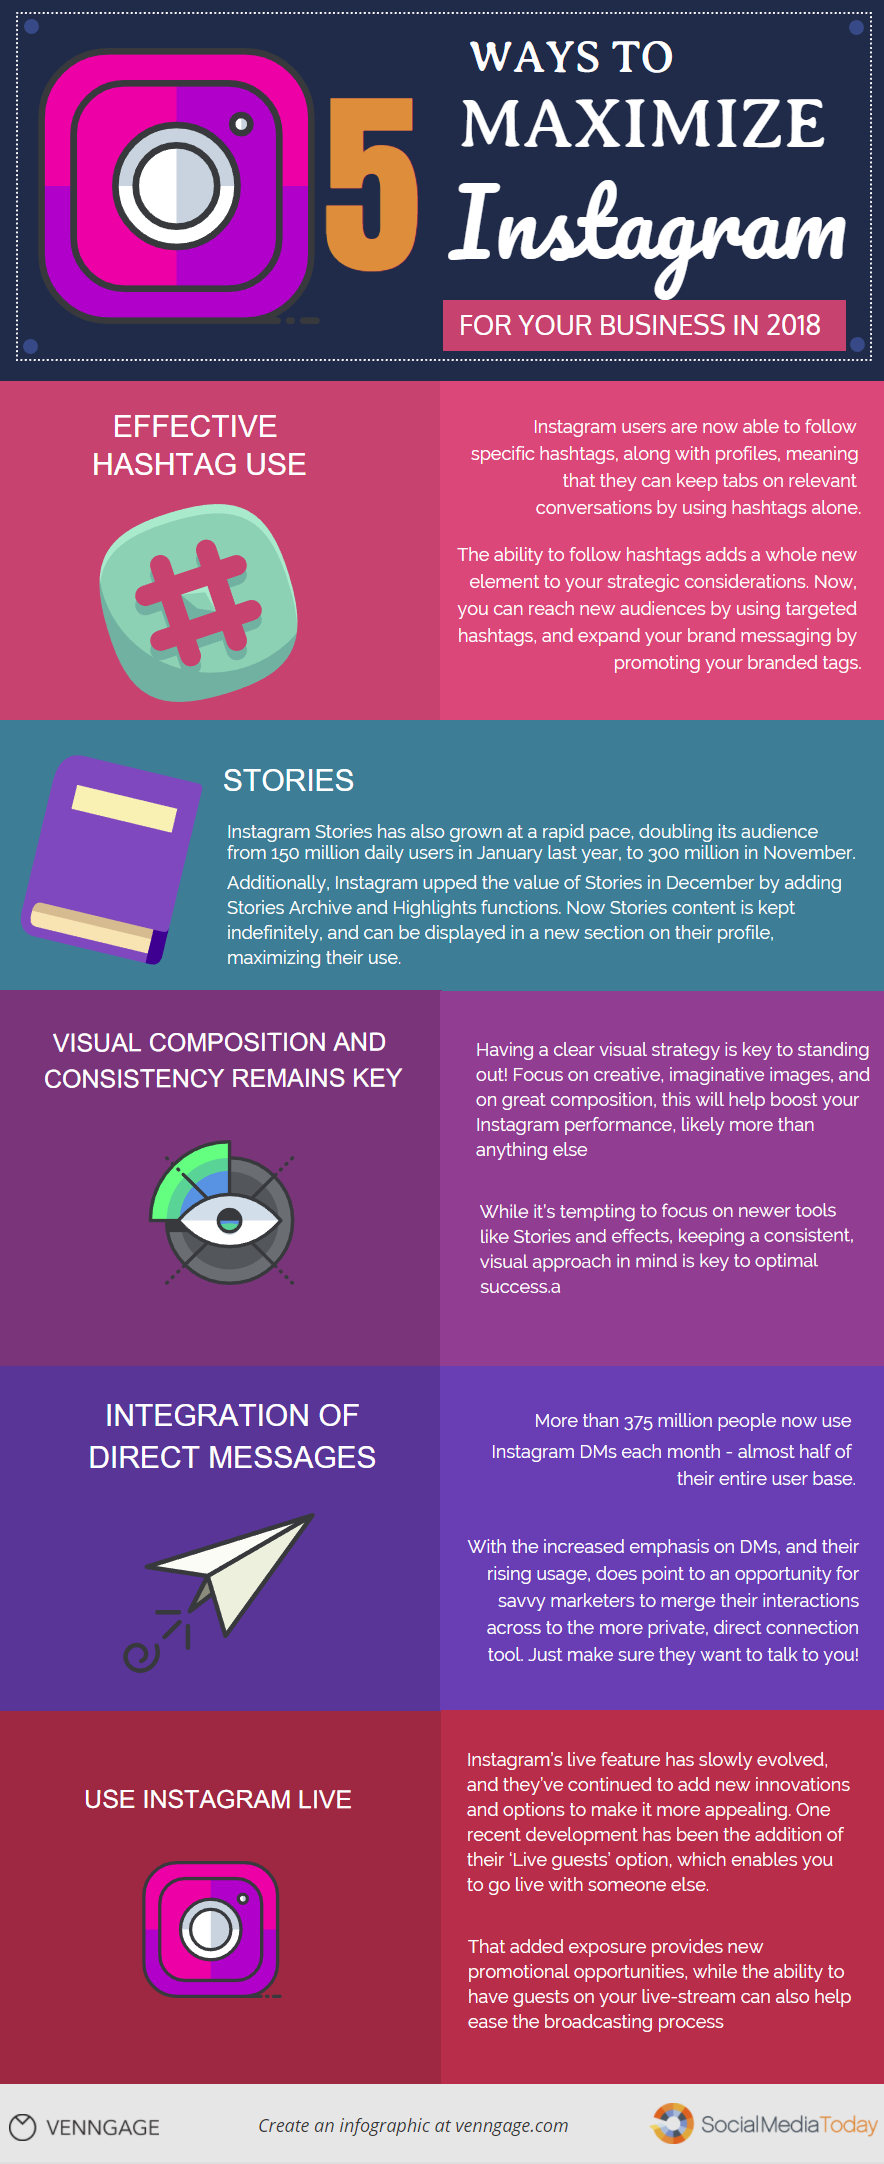 How To Maximize Your Instagram Campaign 5 Smart Ideas Infographic Maddy Osma Instagram Marketing Tips Marketing Strategy Social Media Instagram Marketing